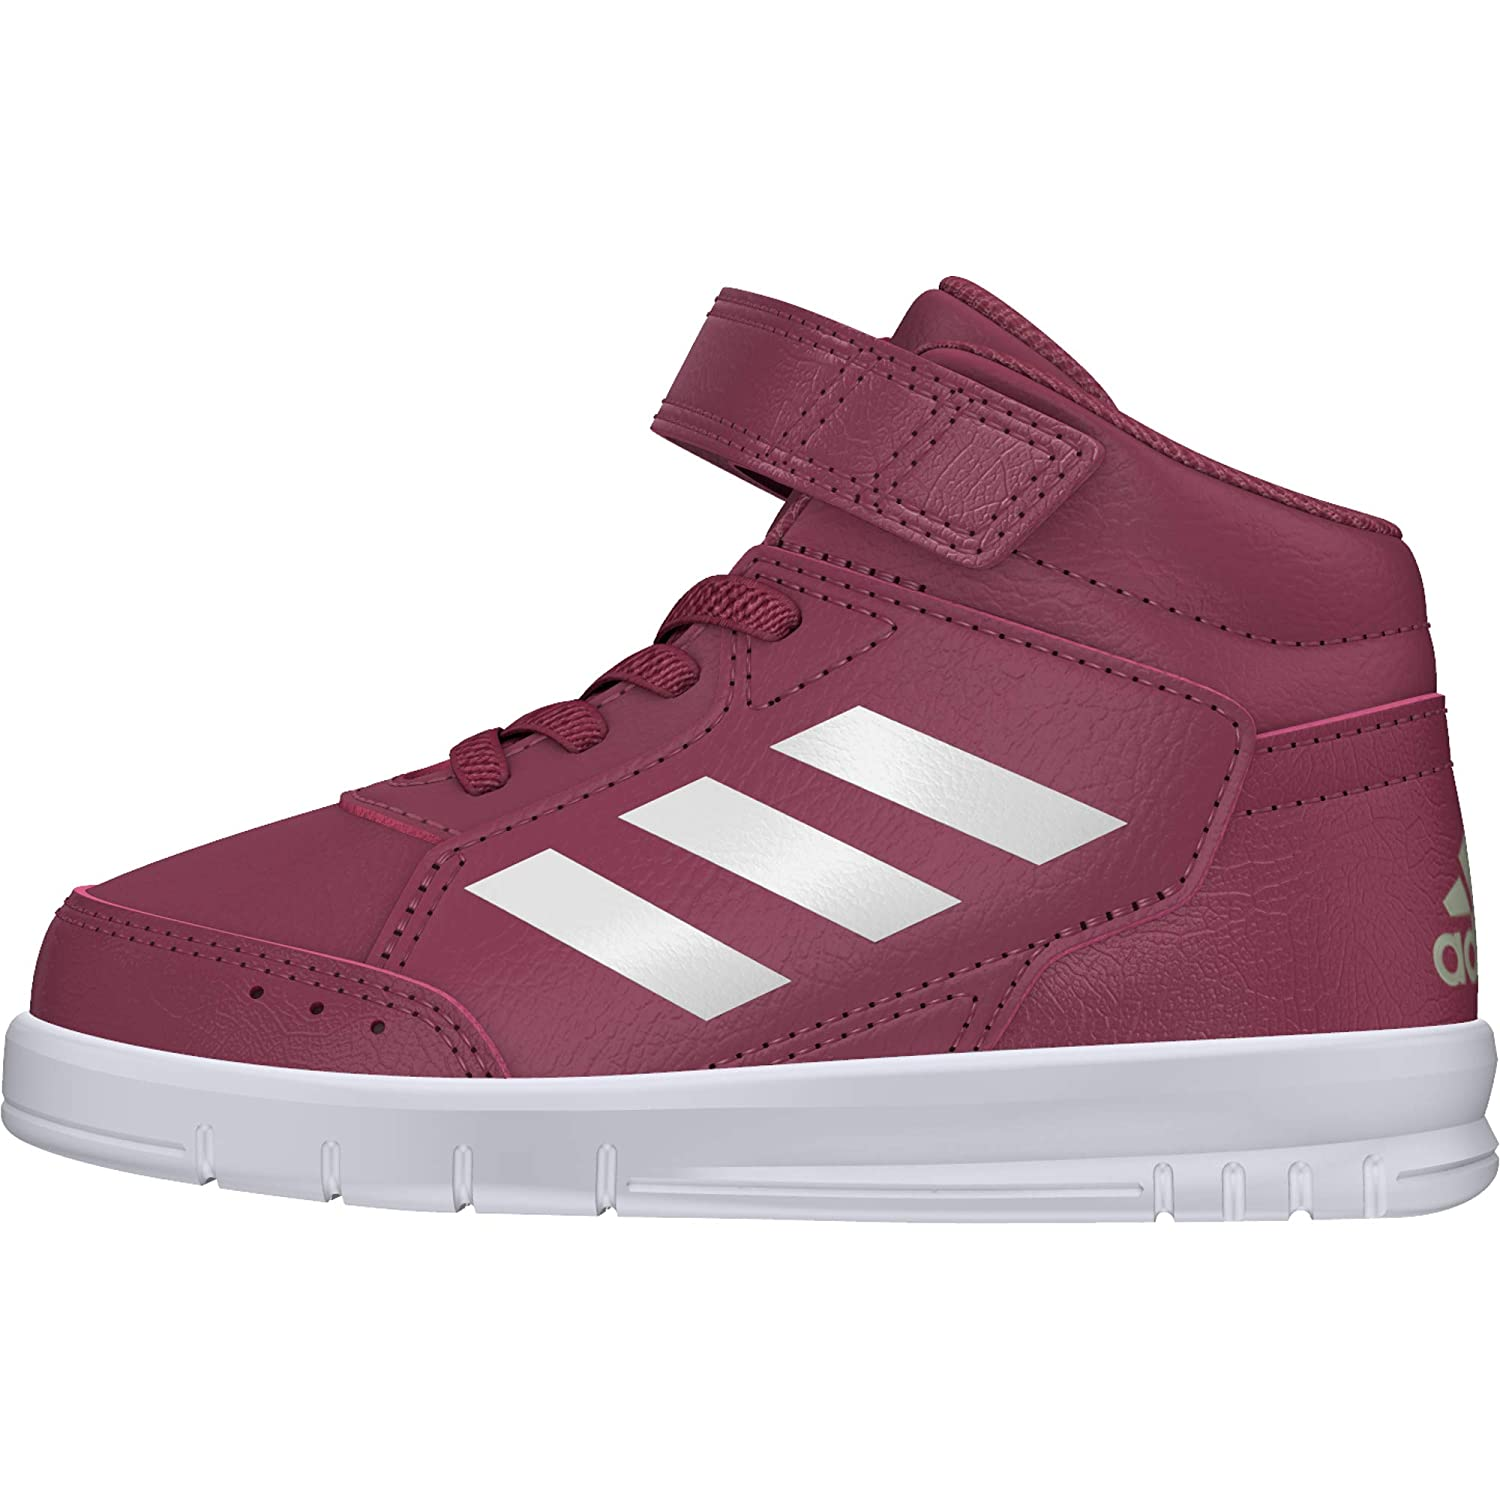 Amazon.com: adidas - AltaSport Mid EL I - AH2551 - Color ...